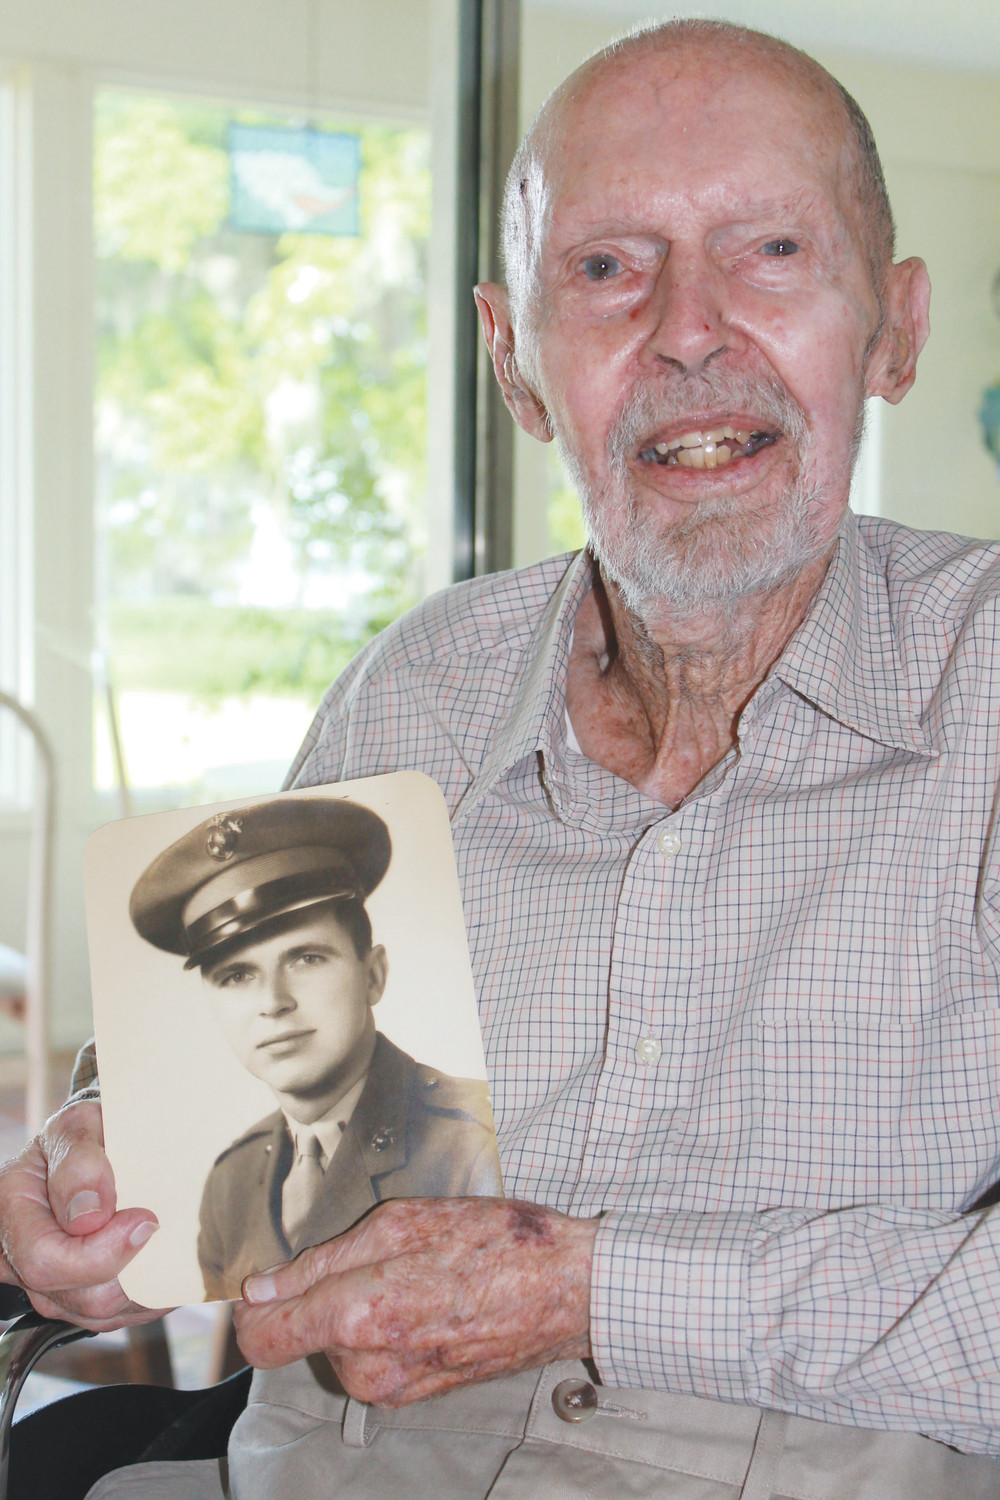 Retired U.S. Marine, John Hansen, shown here in a 2013 Clay Today file photo, was one of the pilots stranded in the Pacific Ocean in 1944 in what is known as The Flintlock Disaster. The tragic event is now chronicled in a new book.